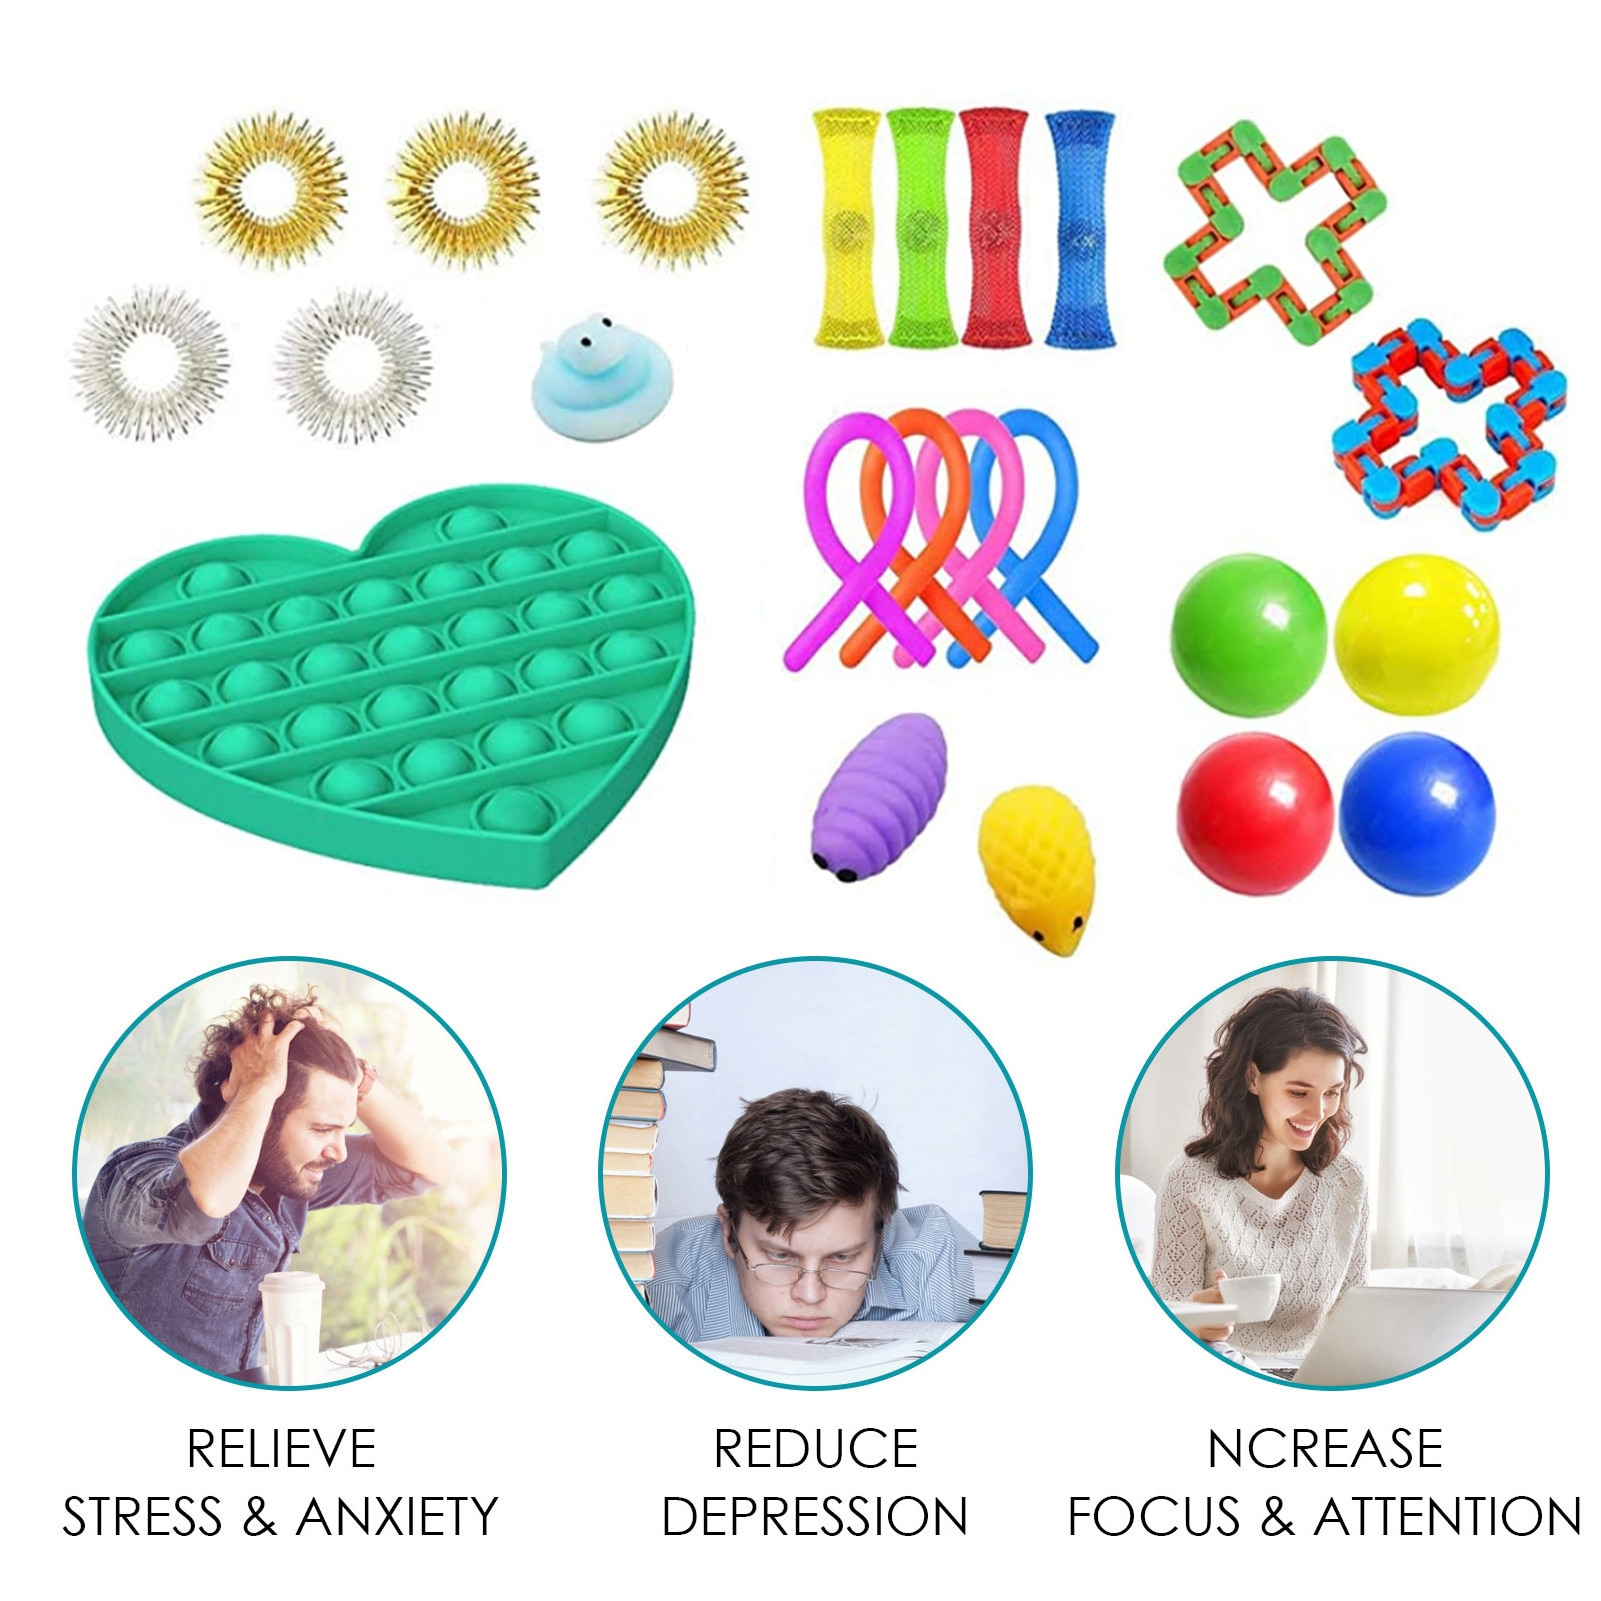 Fidget Sensory Antistress Toy Sensory Fidget Toys Set Relieve Stress Toy For Kids Adults Stress Relief Toys Push Popit In Stock enlarge